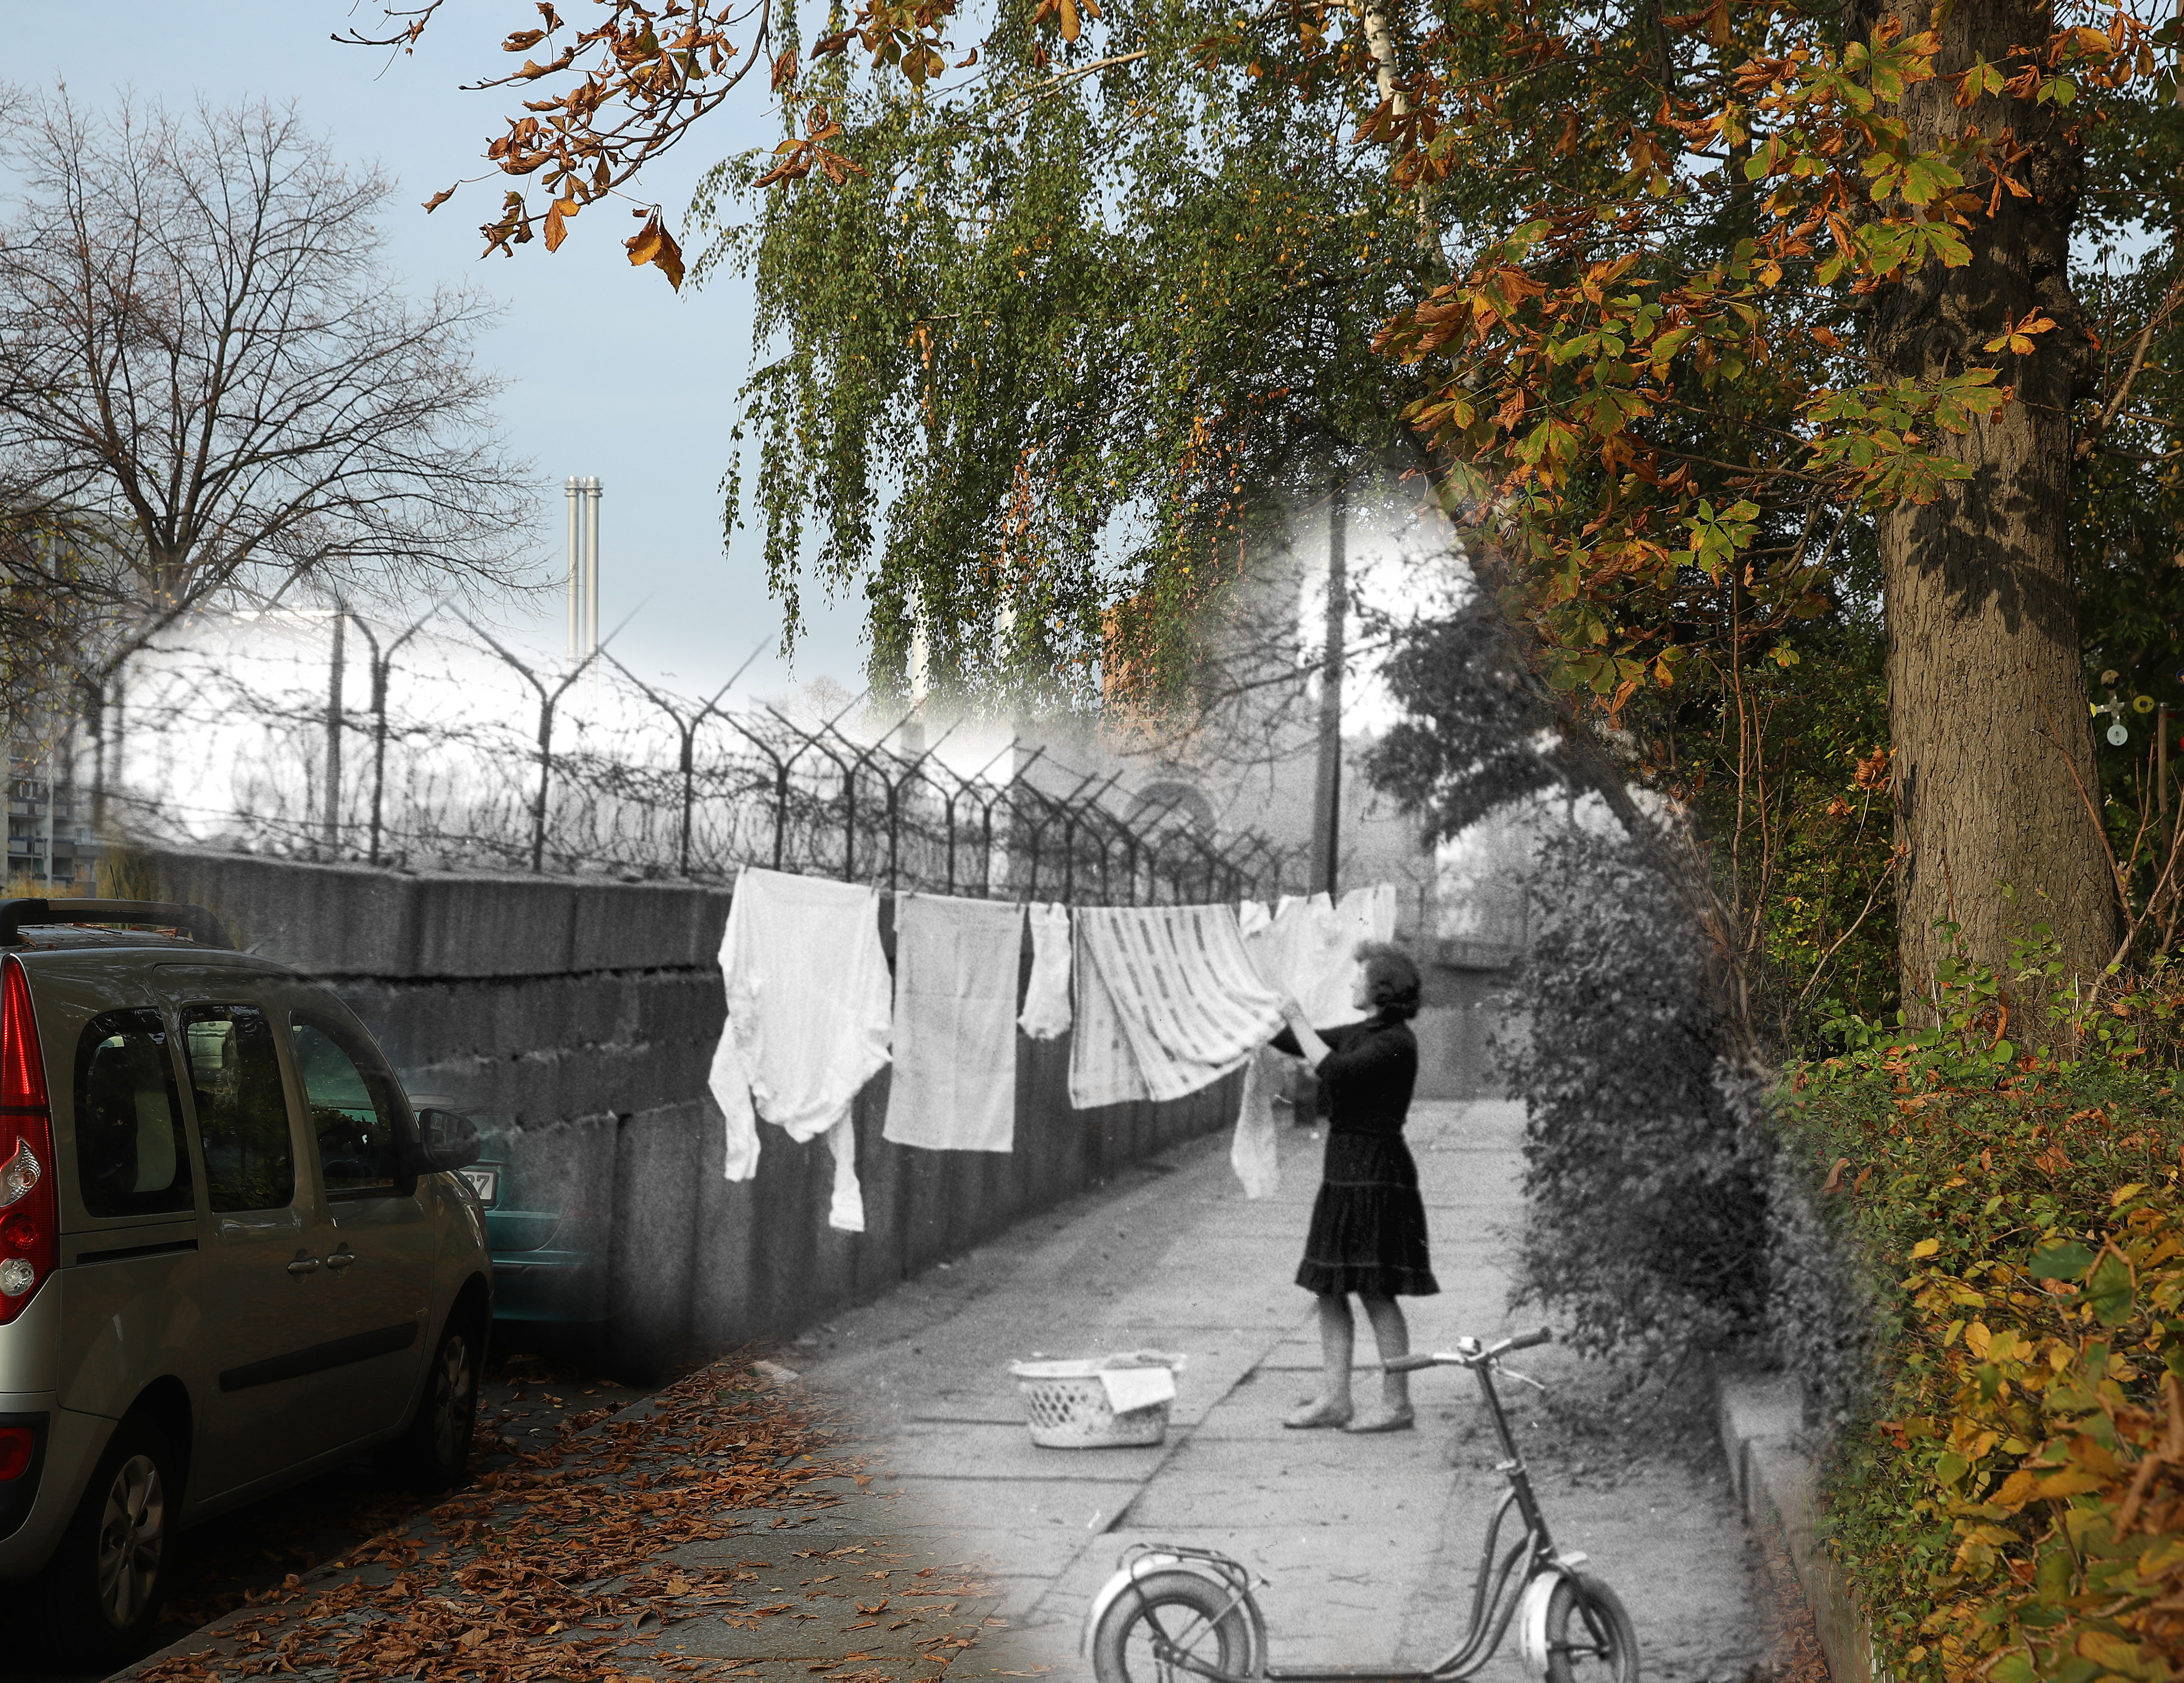 This digital composite image shows Leuschnerdamm street in Berlin in 1963 (Express Newspapers/Getty Images) and on October 23, 2019 (Sean Gallup).